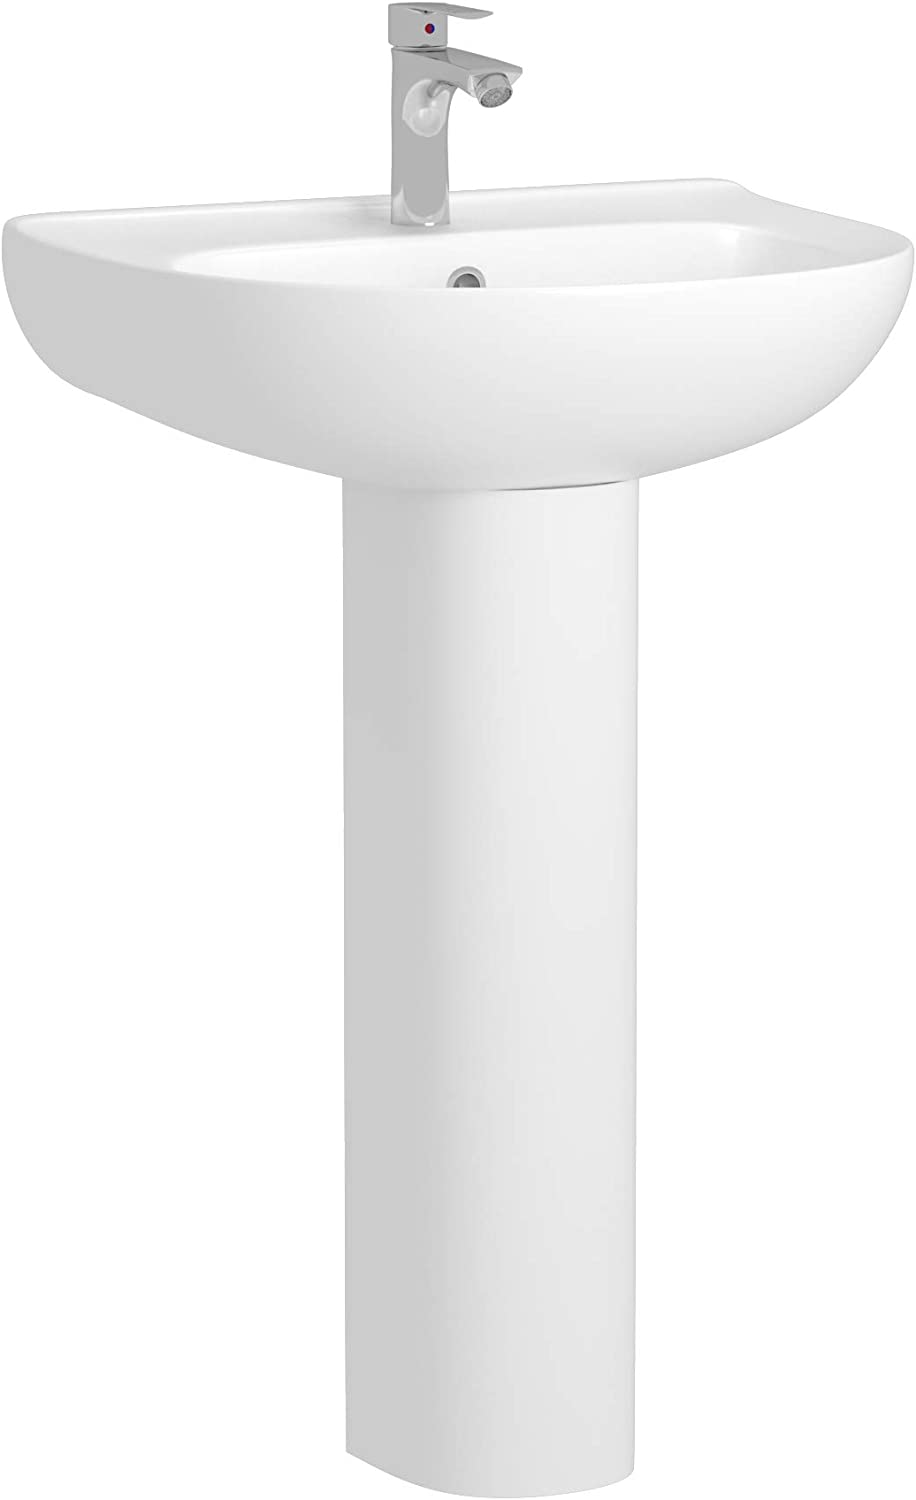 Bathroom Breeze 520mm Round Floor Standing Full Pedestal Ceramic Wash Basin and 1 Tap Hole